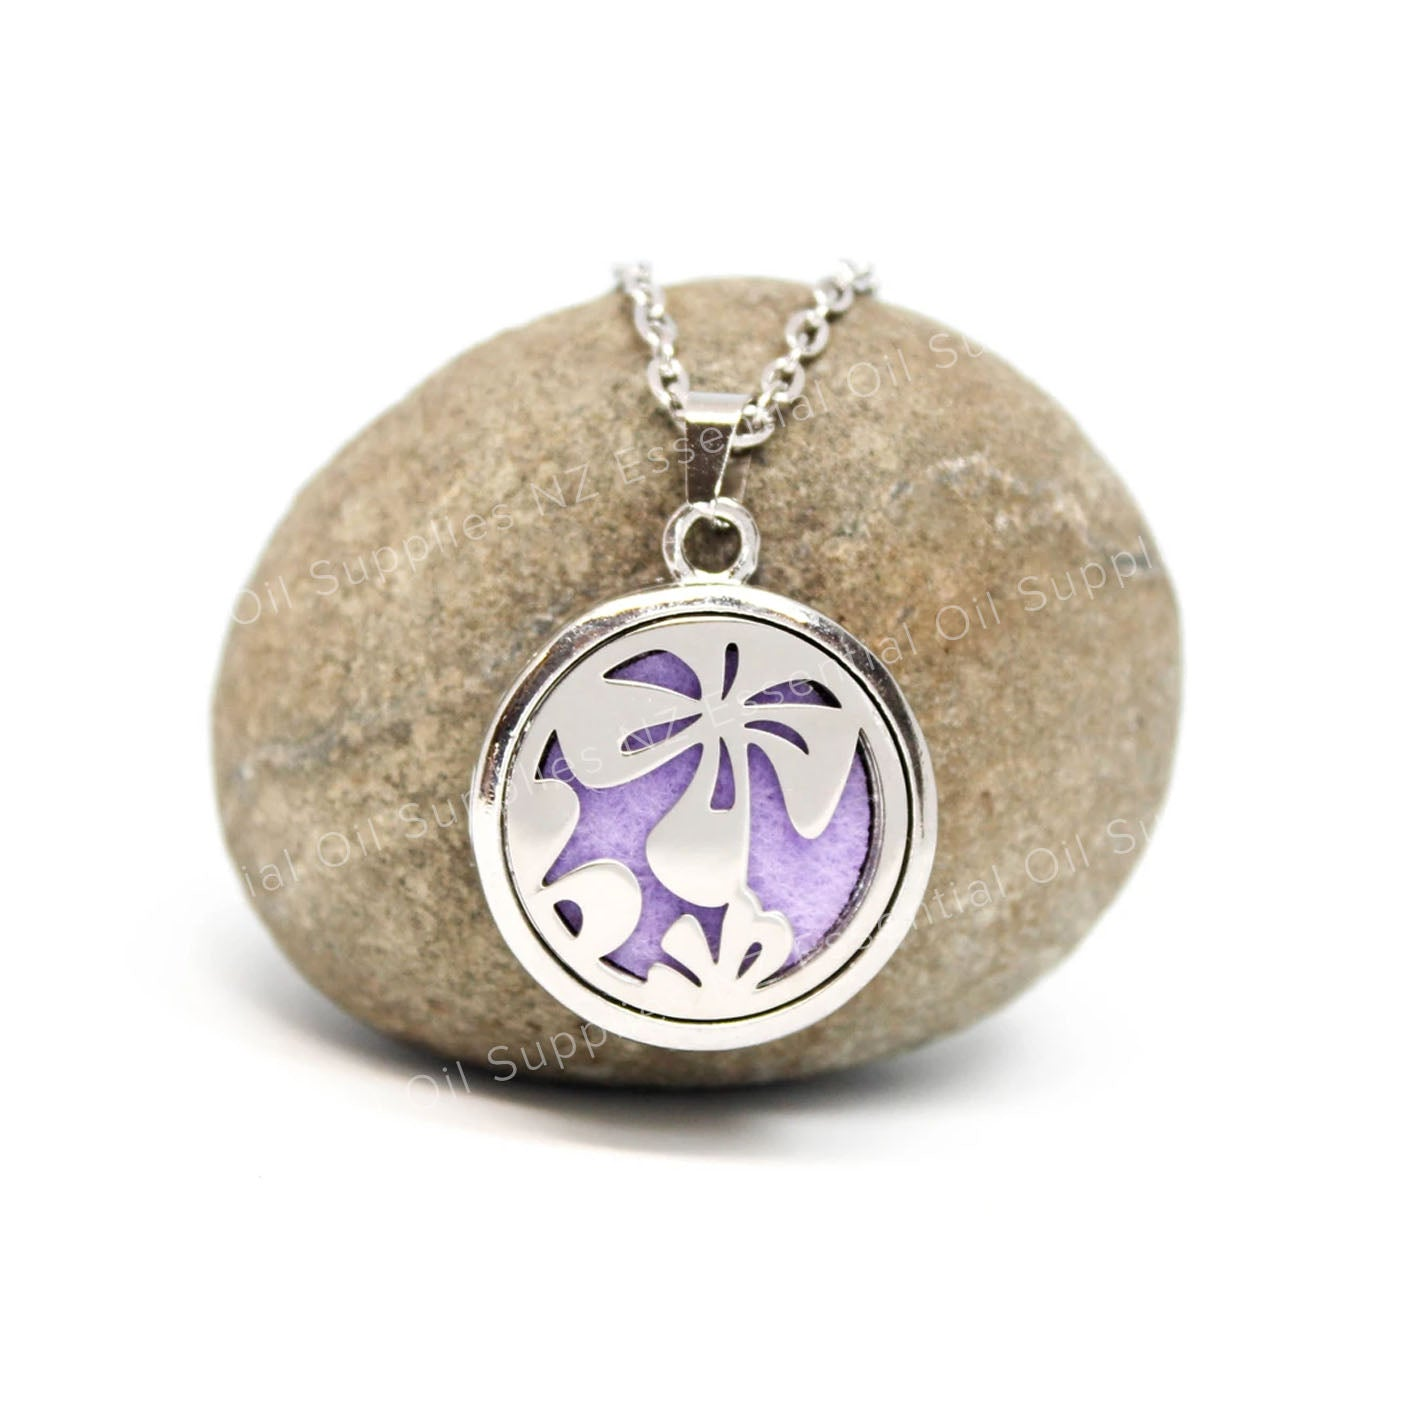 Hibiscus Flower Diffuser Necklace for Essential Oils NZ EOS NZ Aromatherapy Jewellery